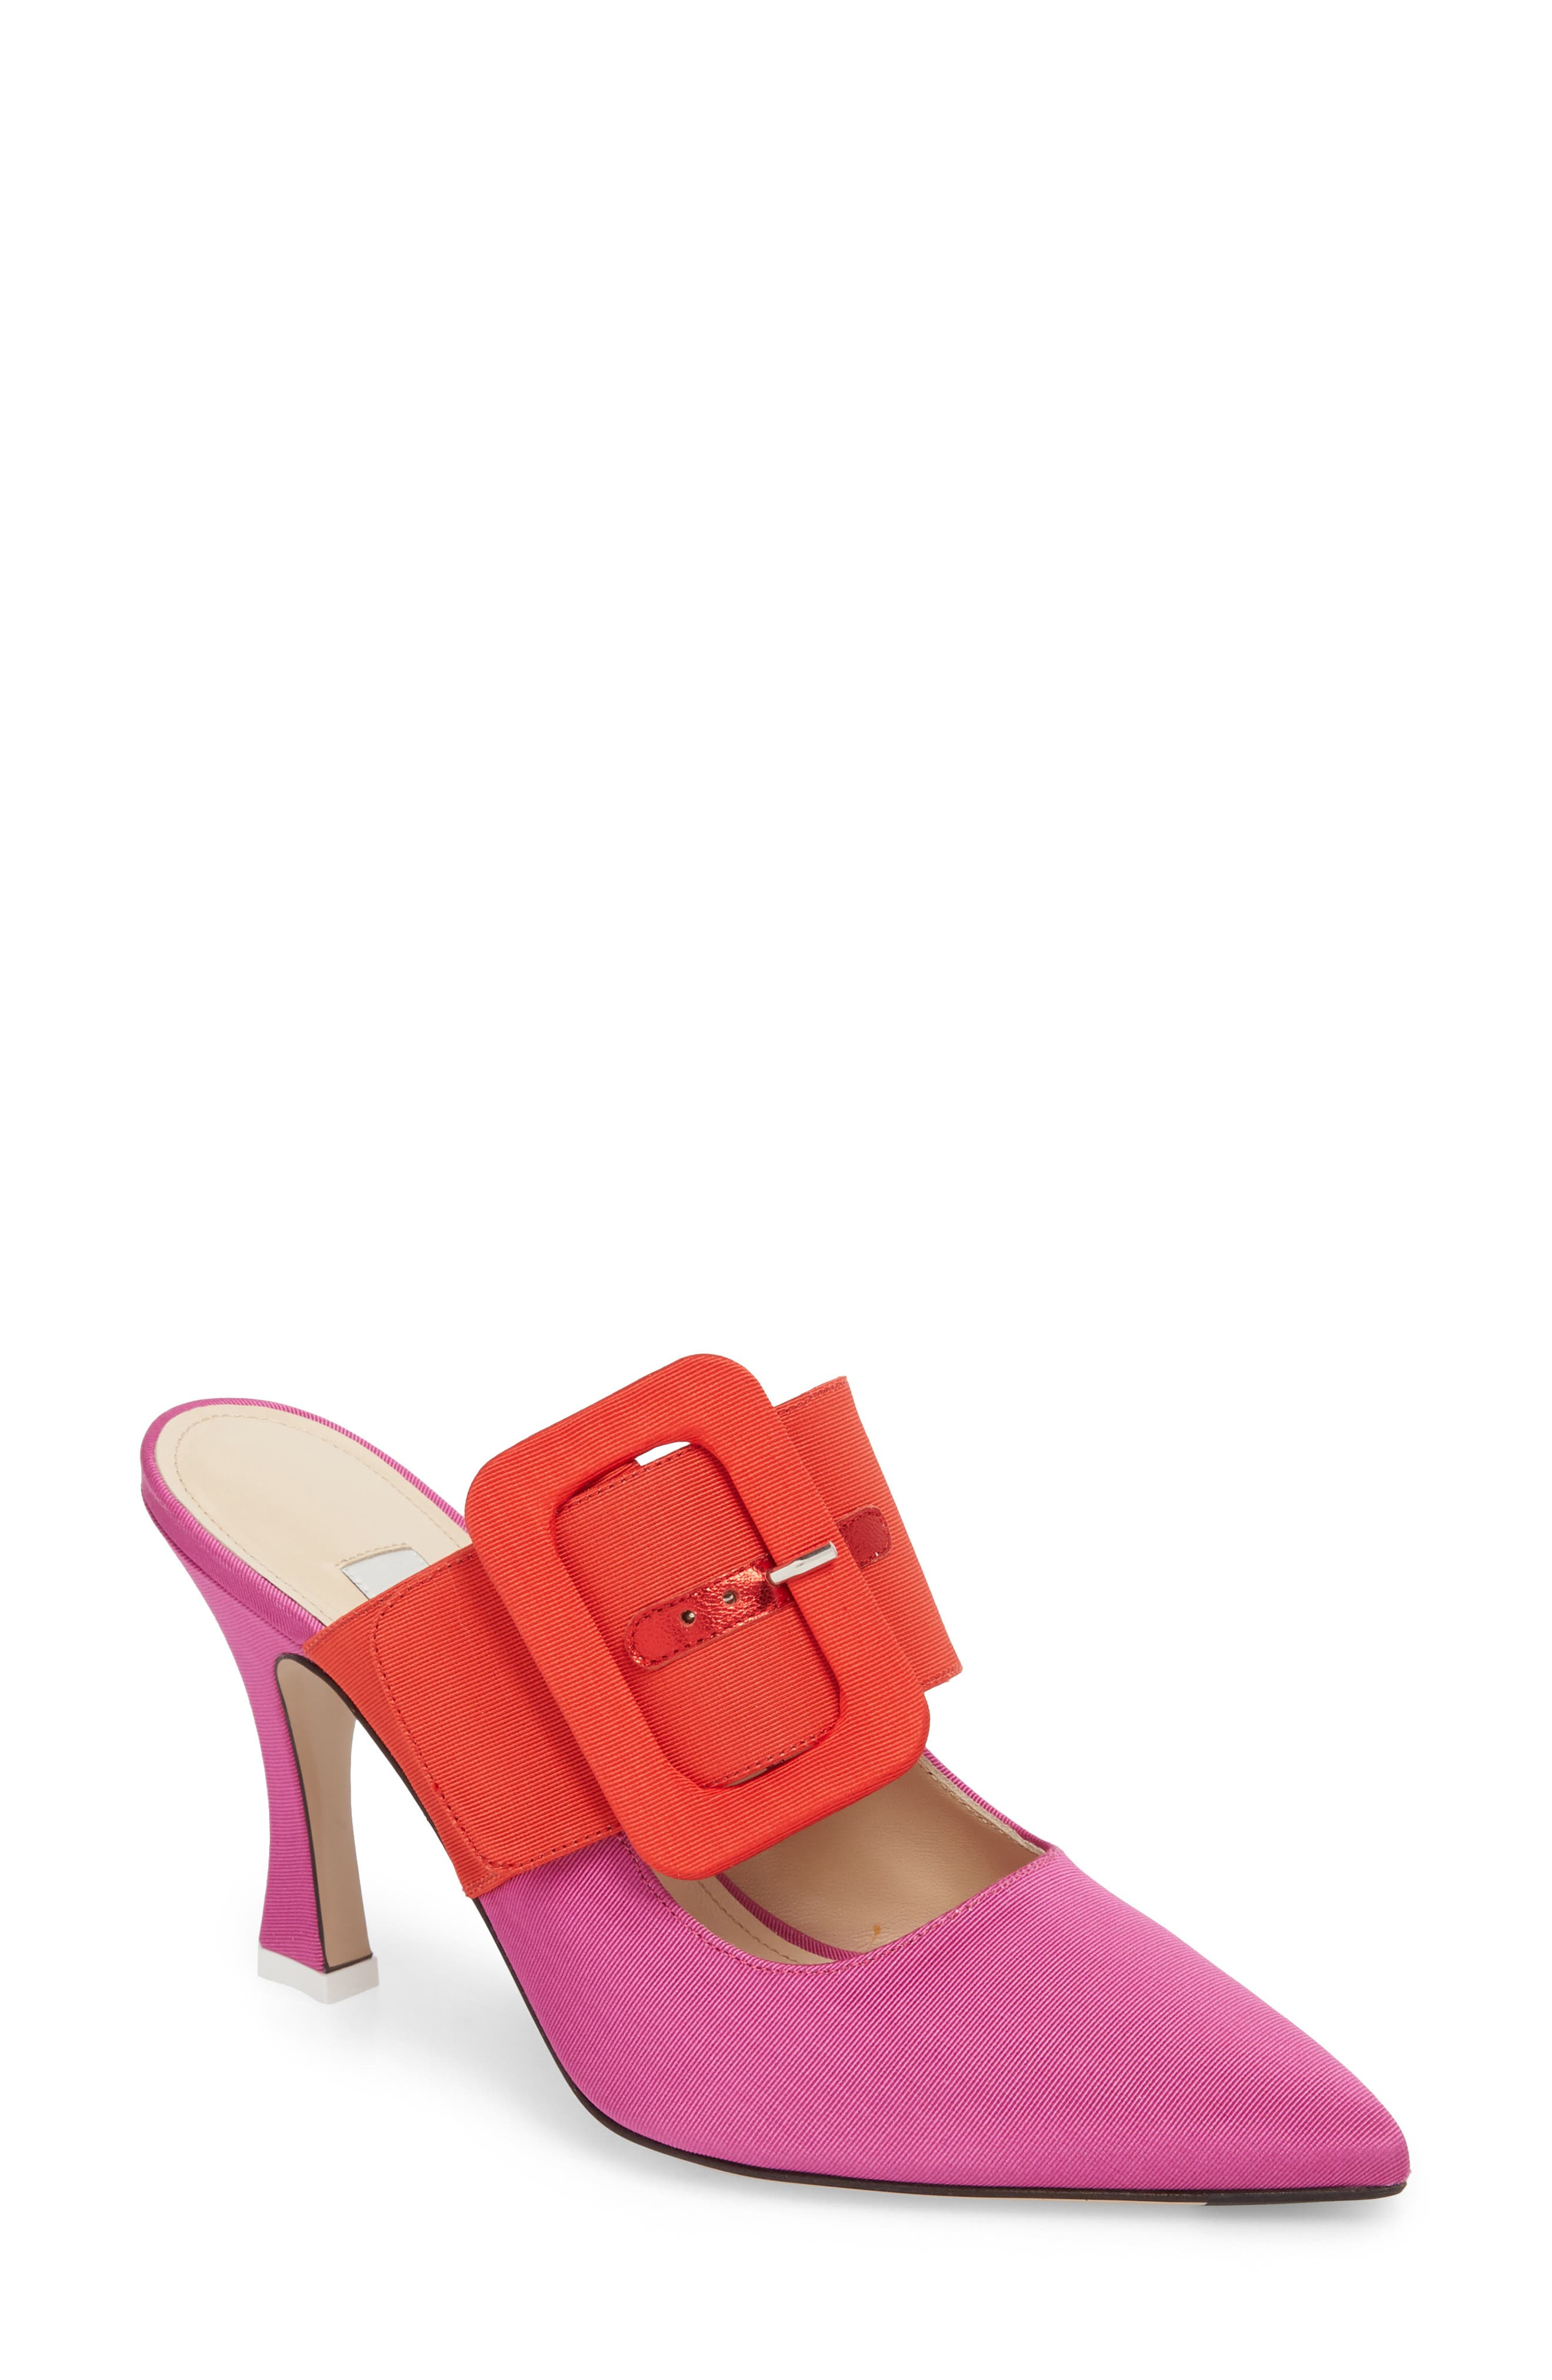 Chloé Buckle Mule,                         Main,                         color, Pink/ Red